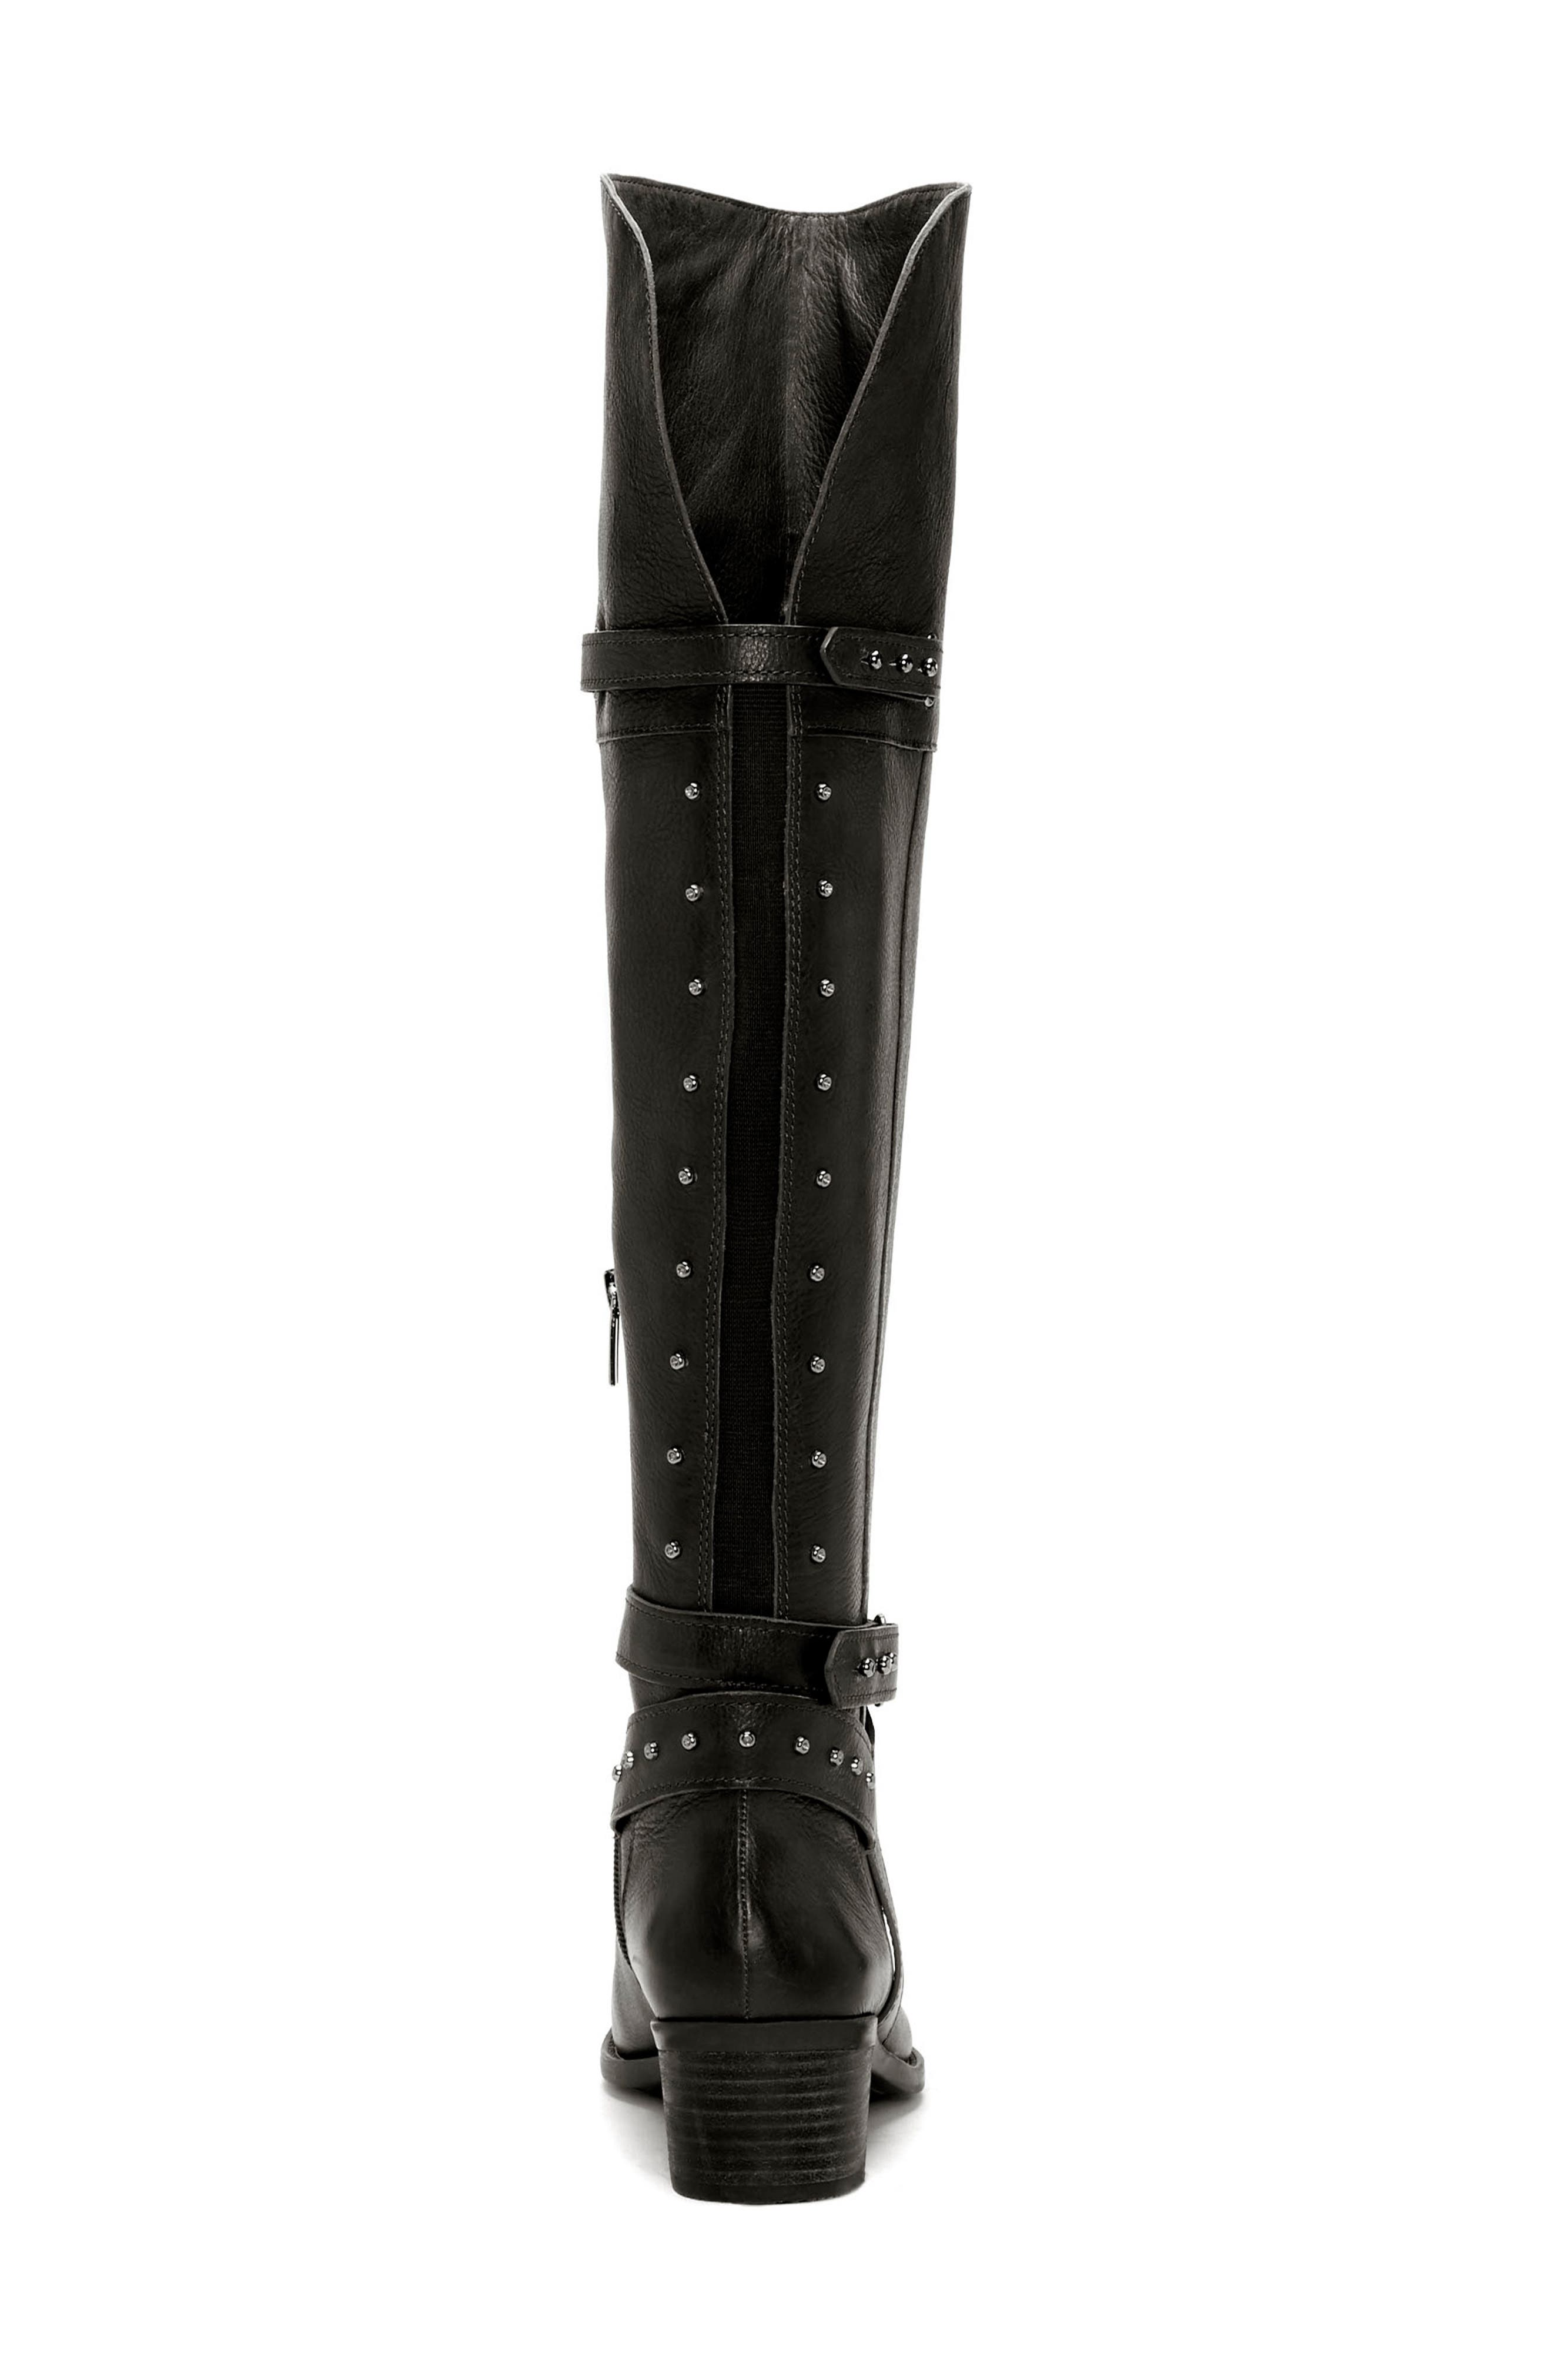 Bestant Over the Knee Boot,                             Alternate thumbnail 6, color,                             BLACK LEATHER WIDE CALF